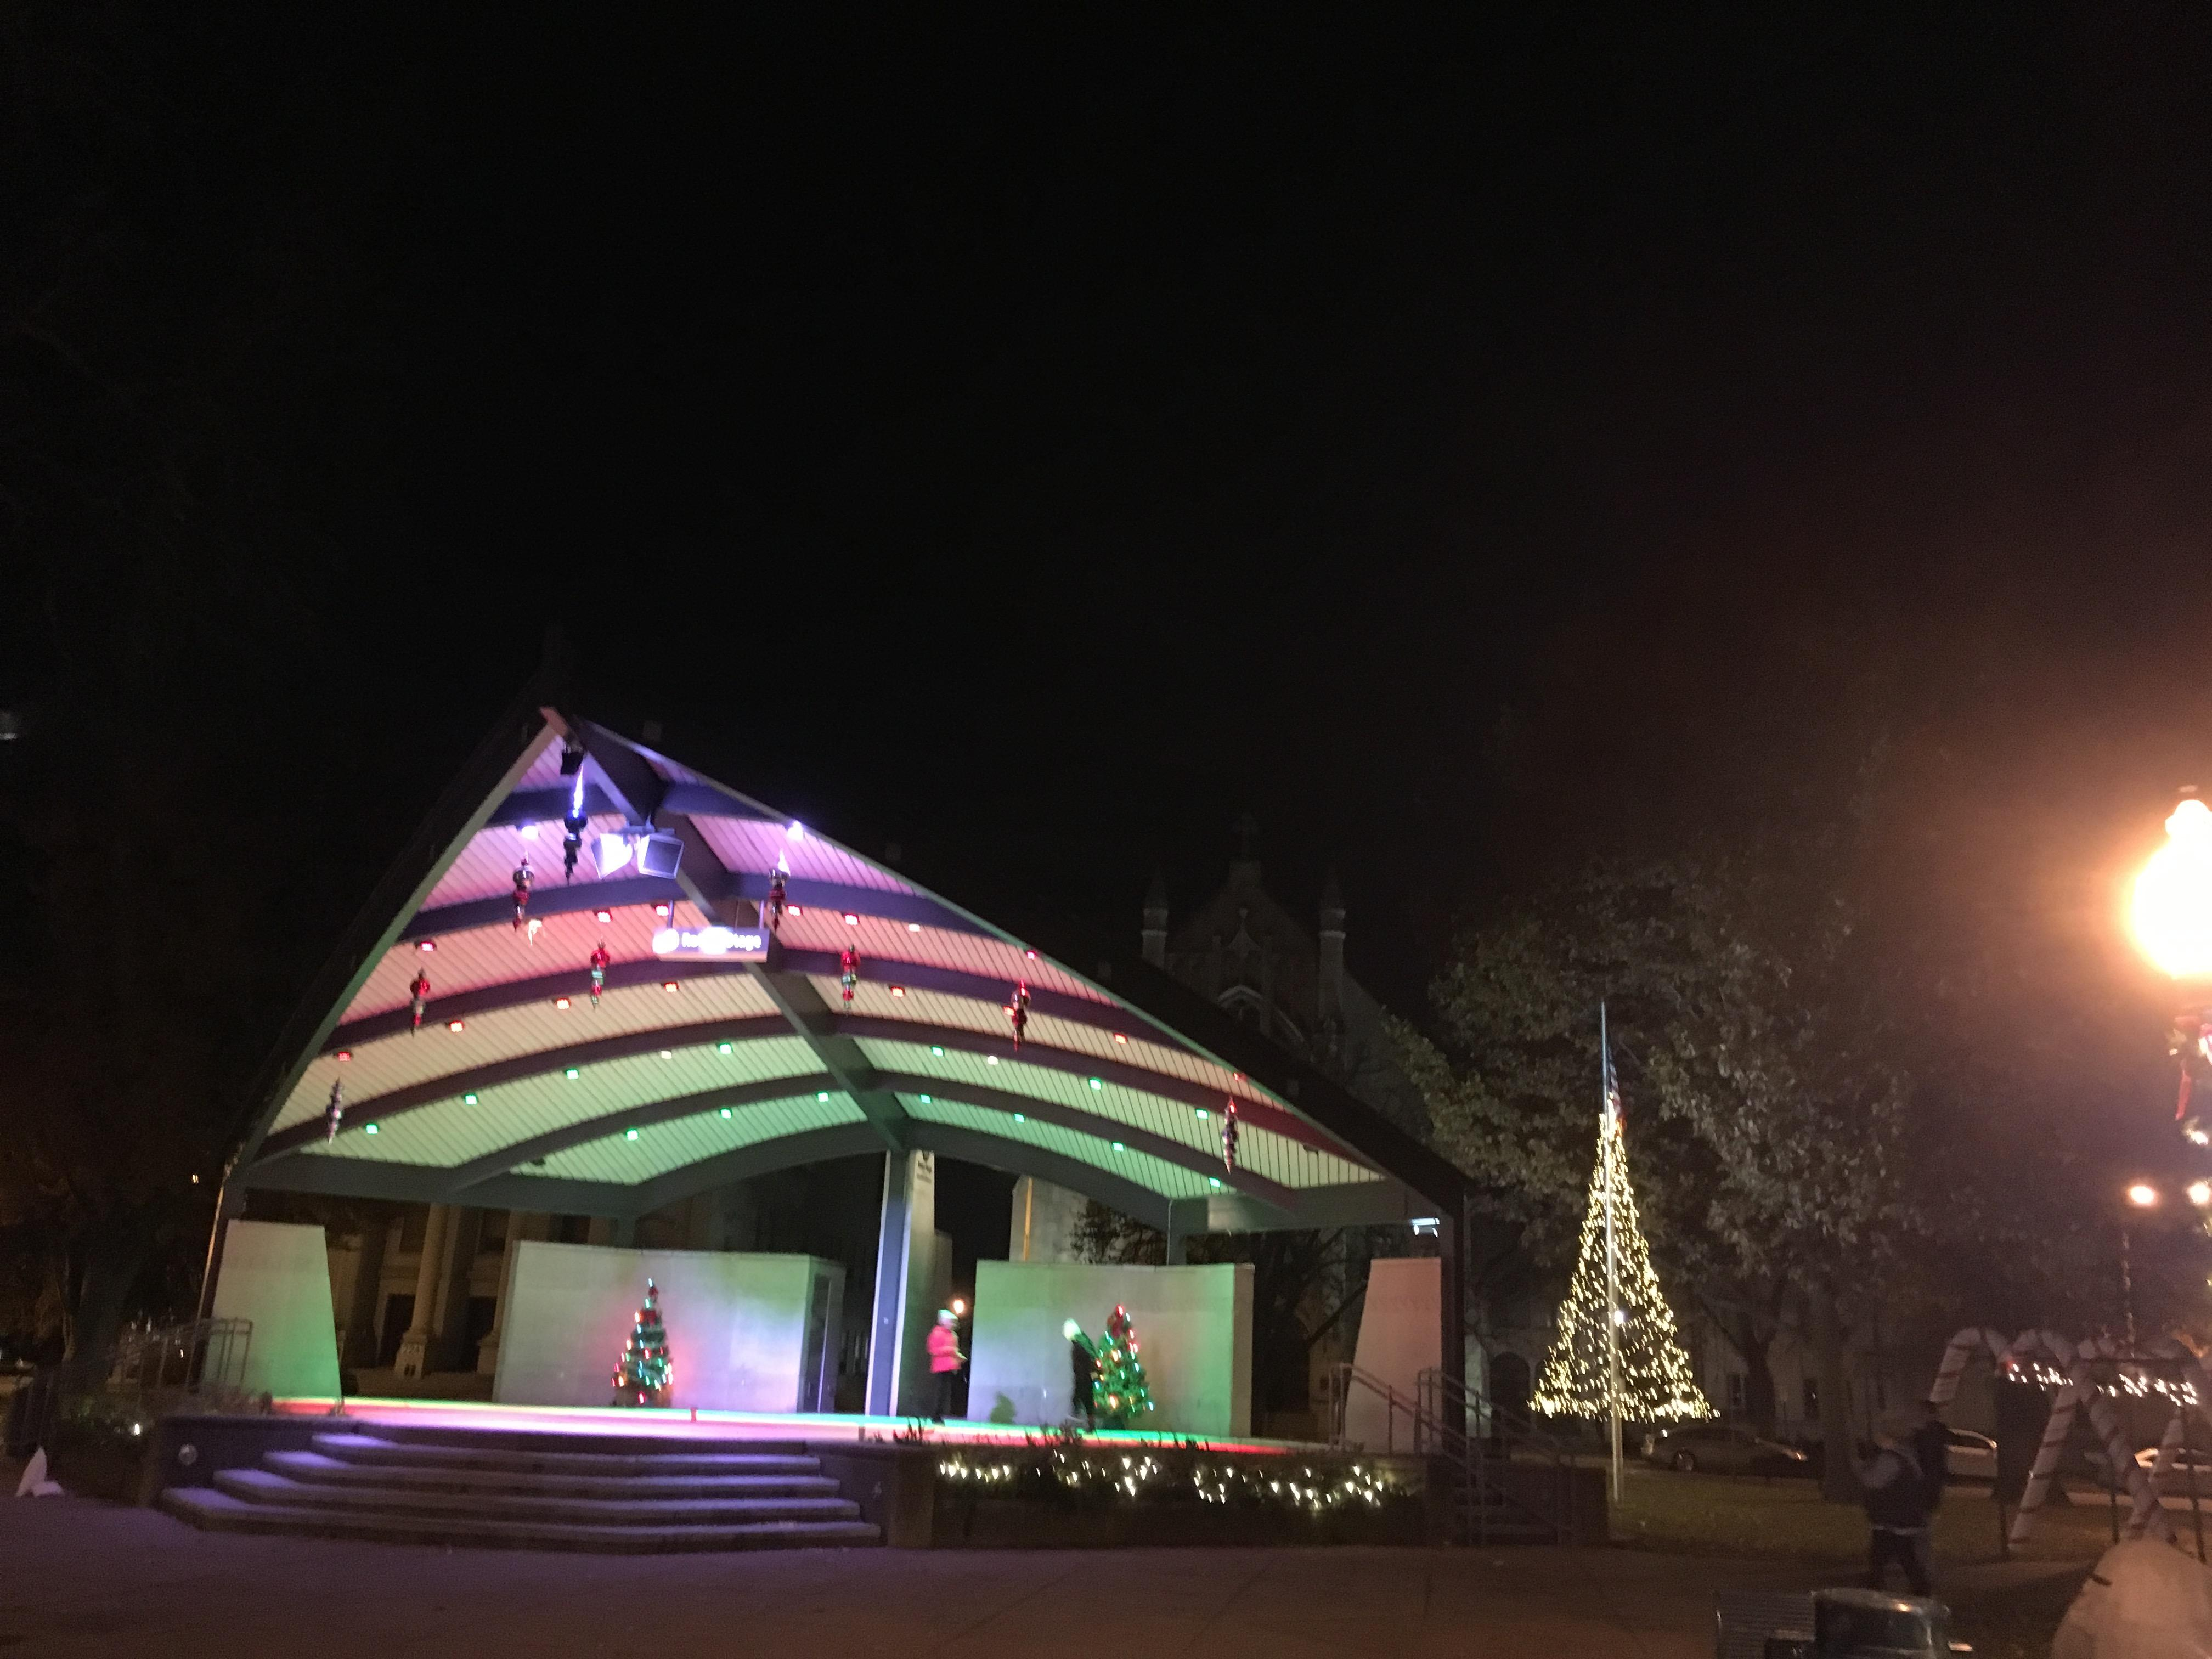 Bronson Park turned into a Christmas Wonderland on Friday, Nov. 23, 2018,  as the tree and other holiday lights were switched on shortly after sunset. (WWMT/Jason Heeres)